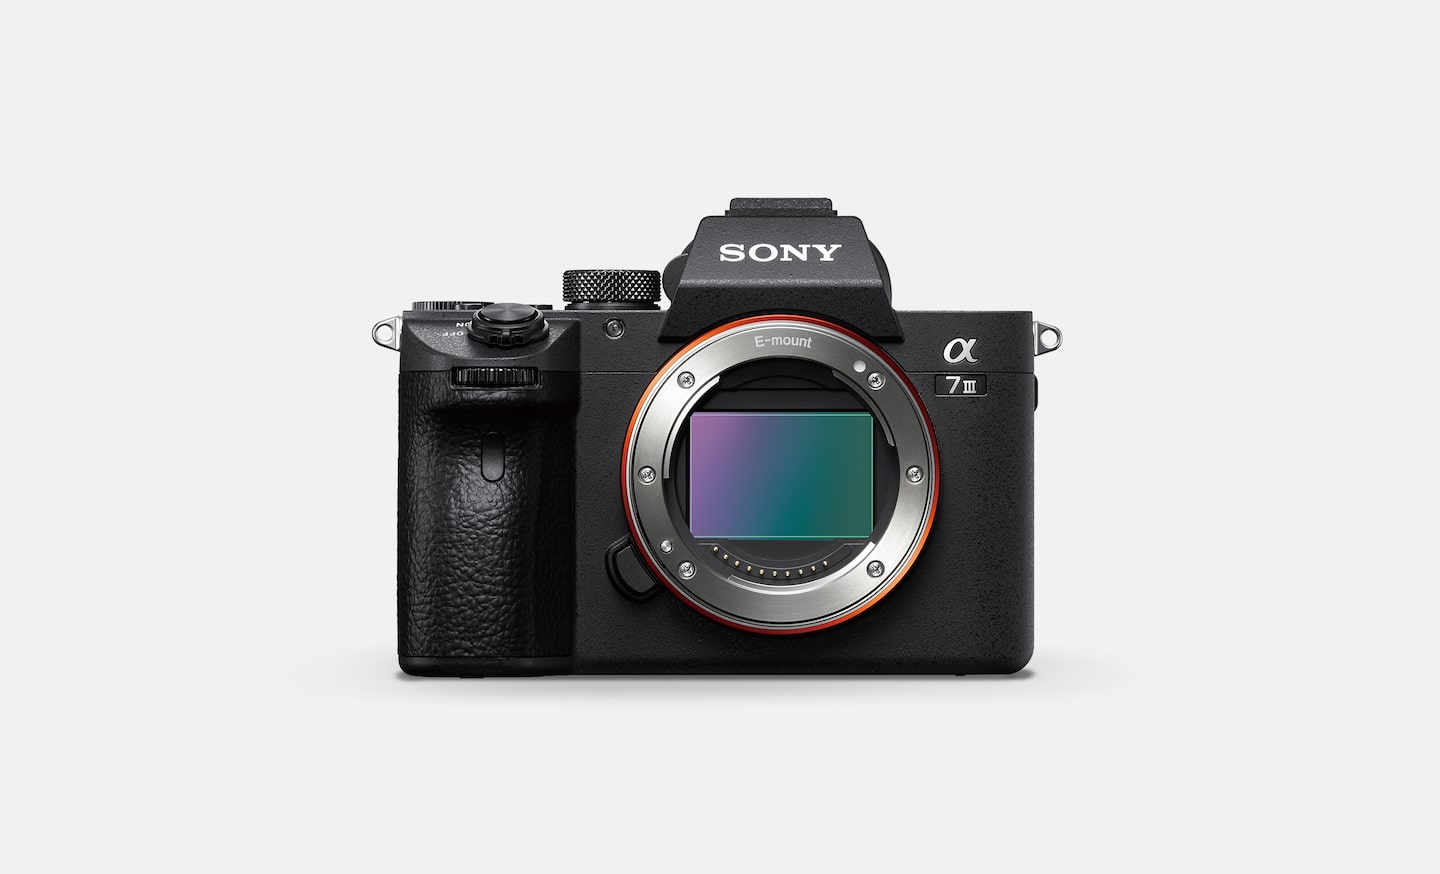 sony a7 iii specs image